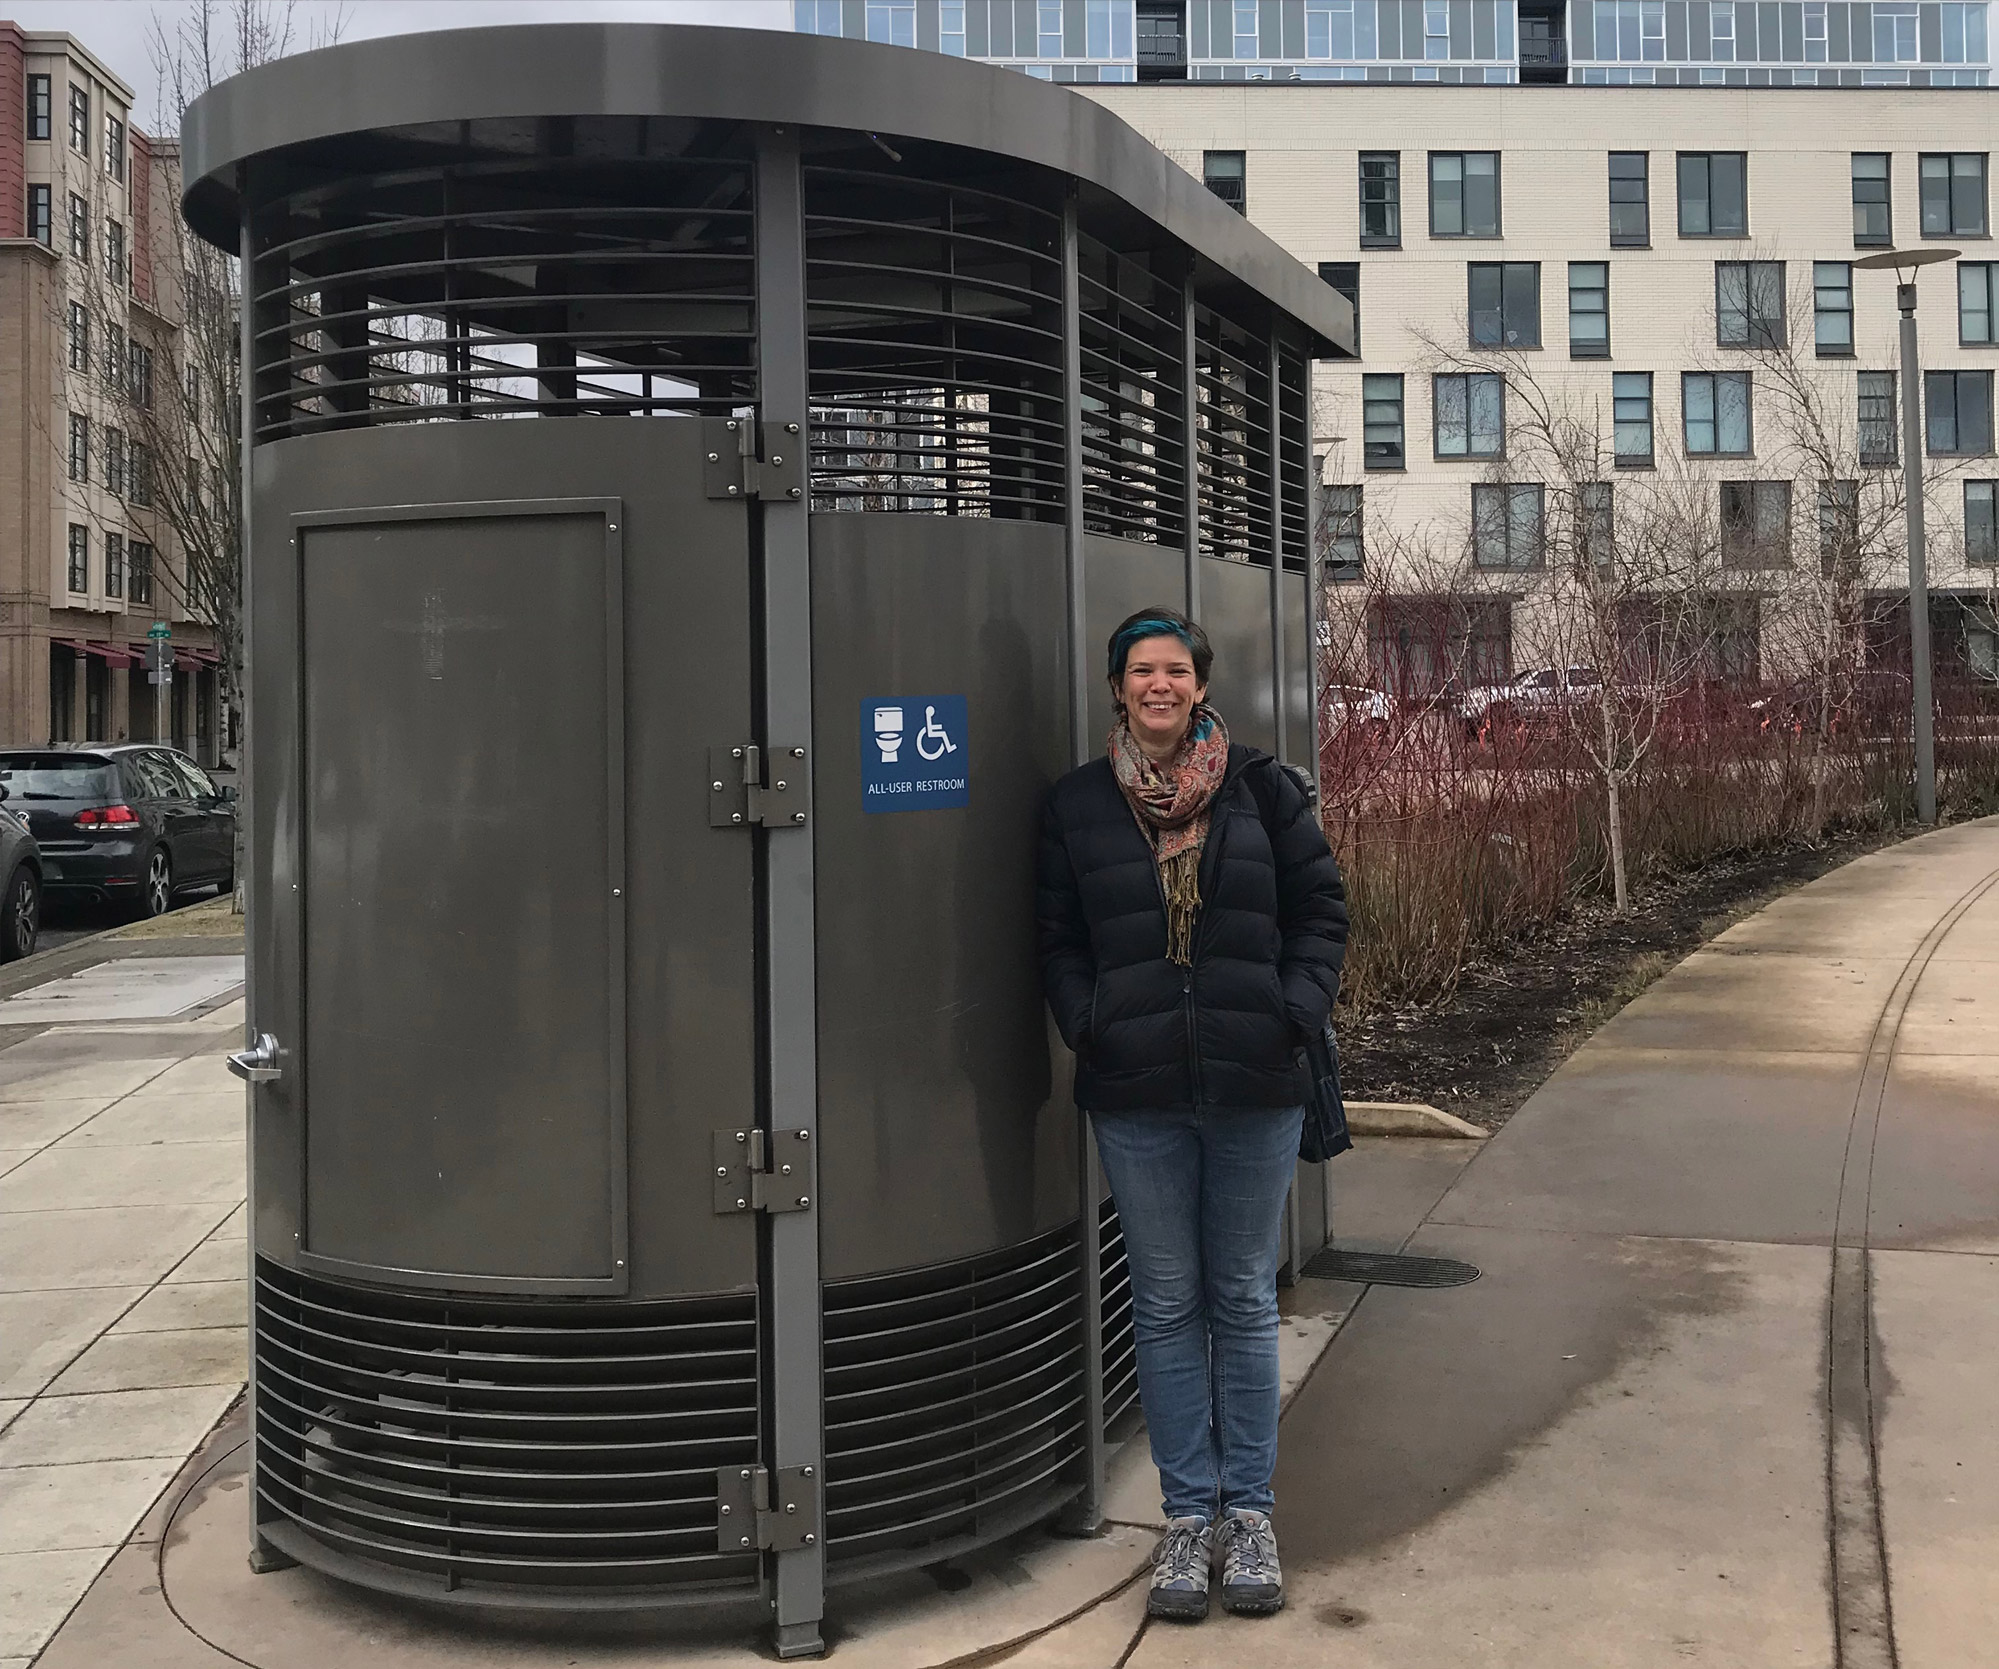 Churchill Fellow explores accessibility to public toilets and inclusion